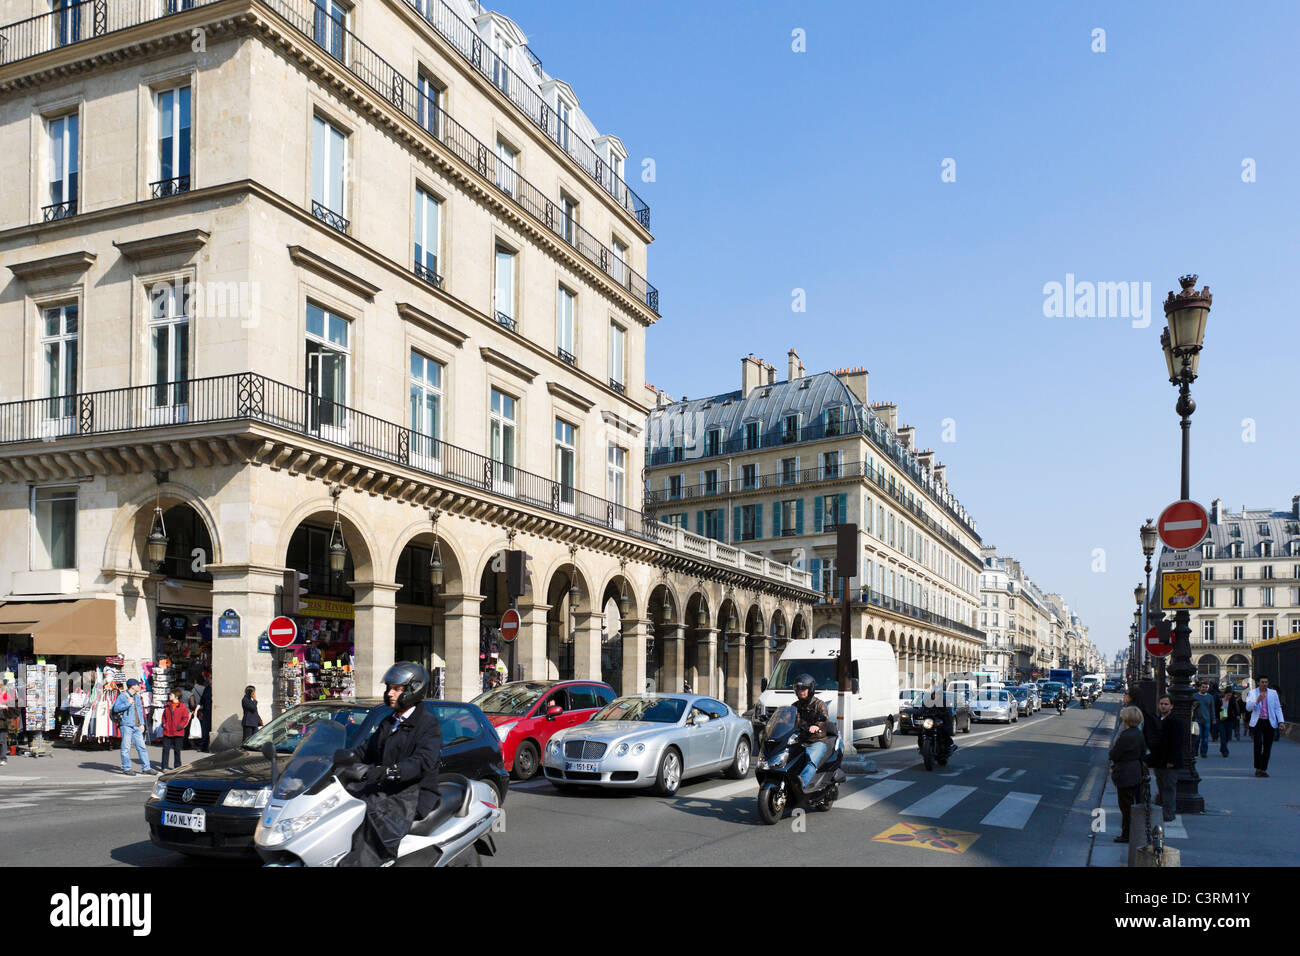 Traffic on the Rue de Rivoli near to the Louvre Museum in the city centre, Paris, France - Stock Image